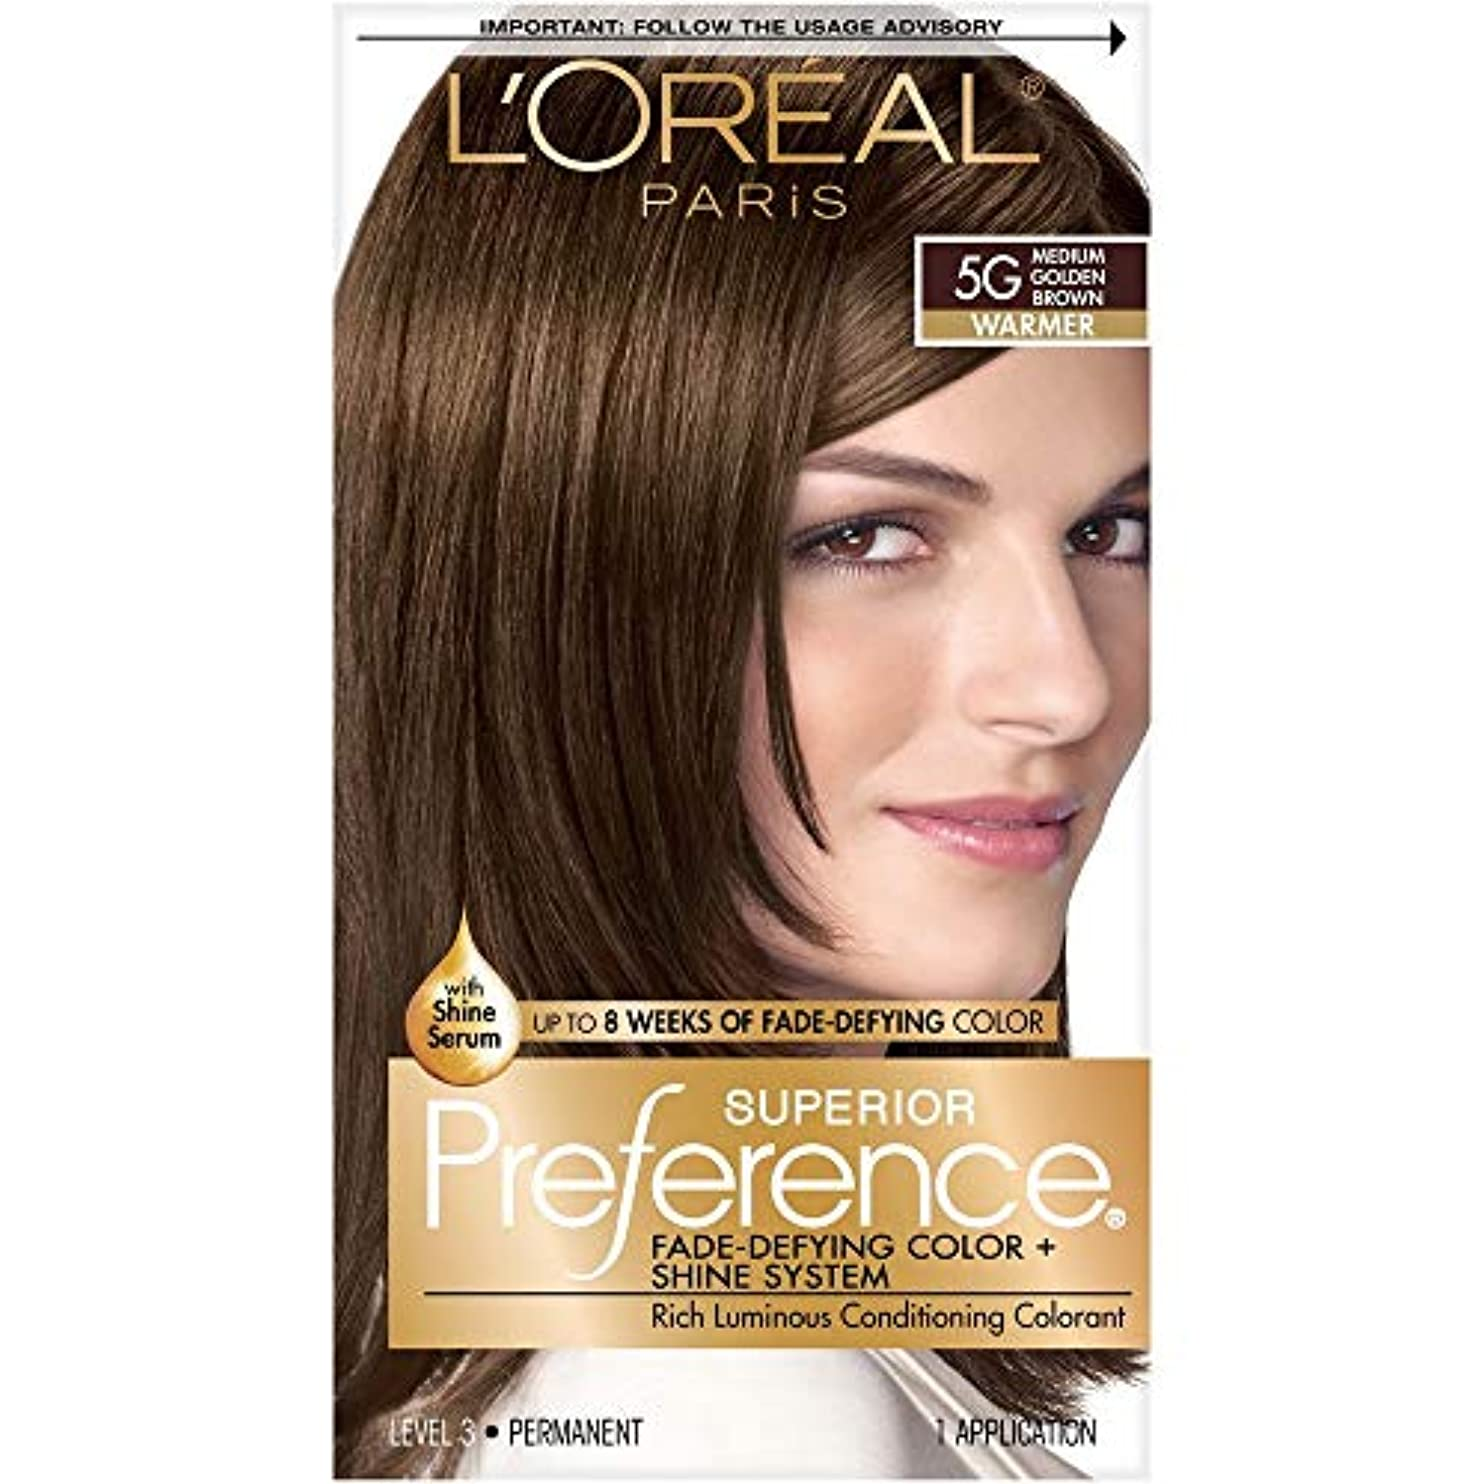 受け入れる陽気な保持する海外直送肘 LOreal Superior Preference Hair Color 5G Medium Golden Brown, Medium Golden Brown 1 each